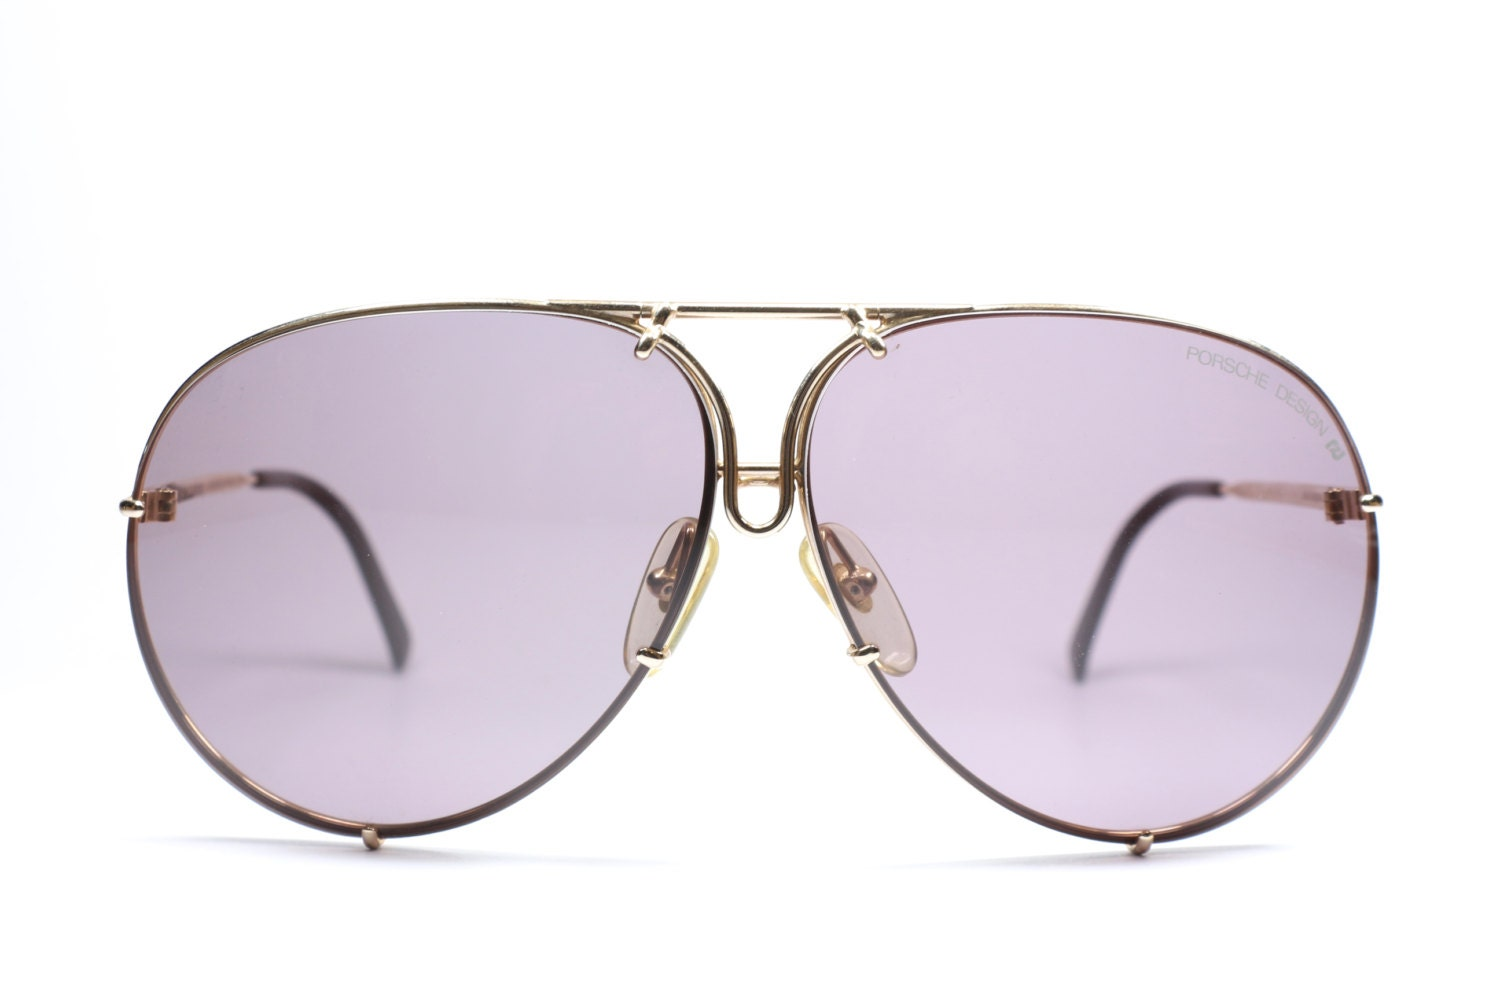 2696b2a1a0fd2 Porsche Design 5623 46 small   aviator sunglasses with two set